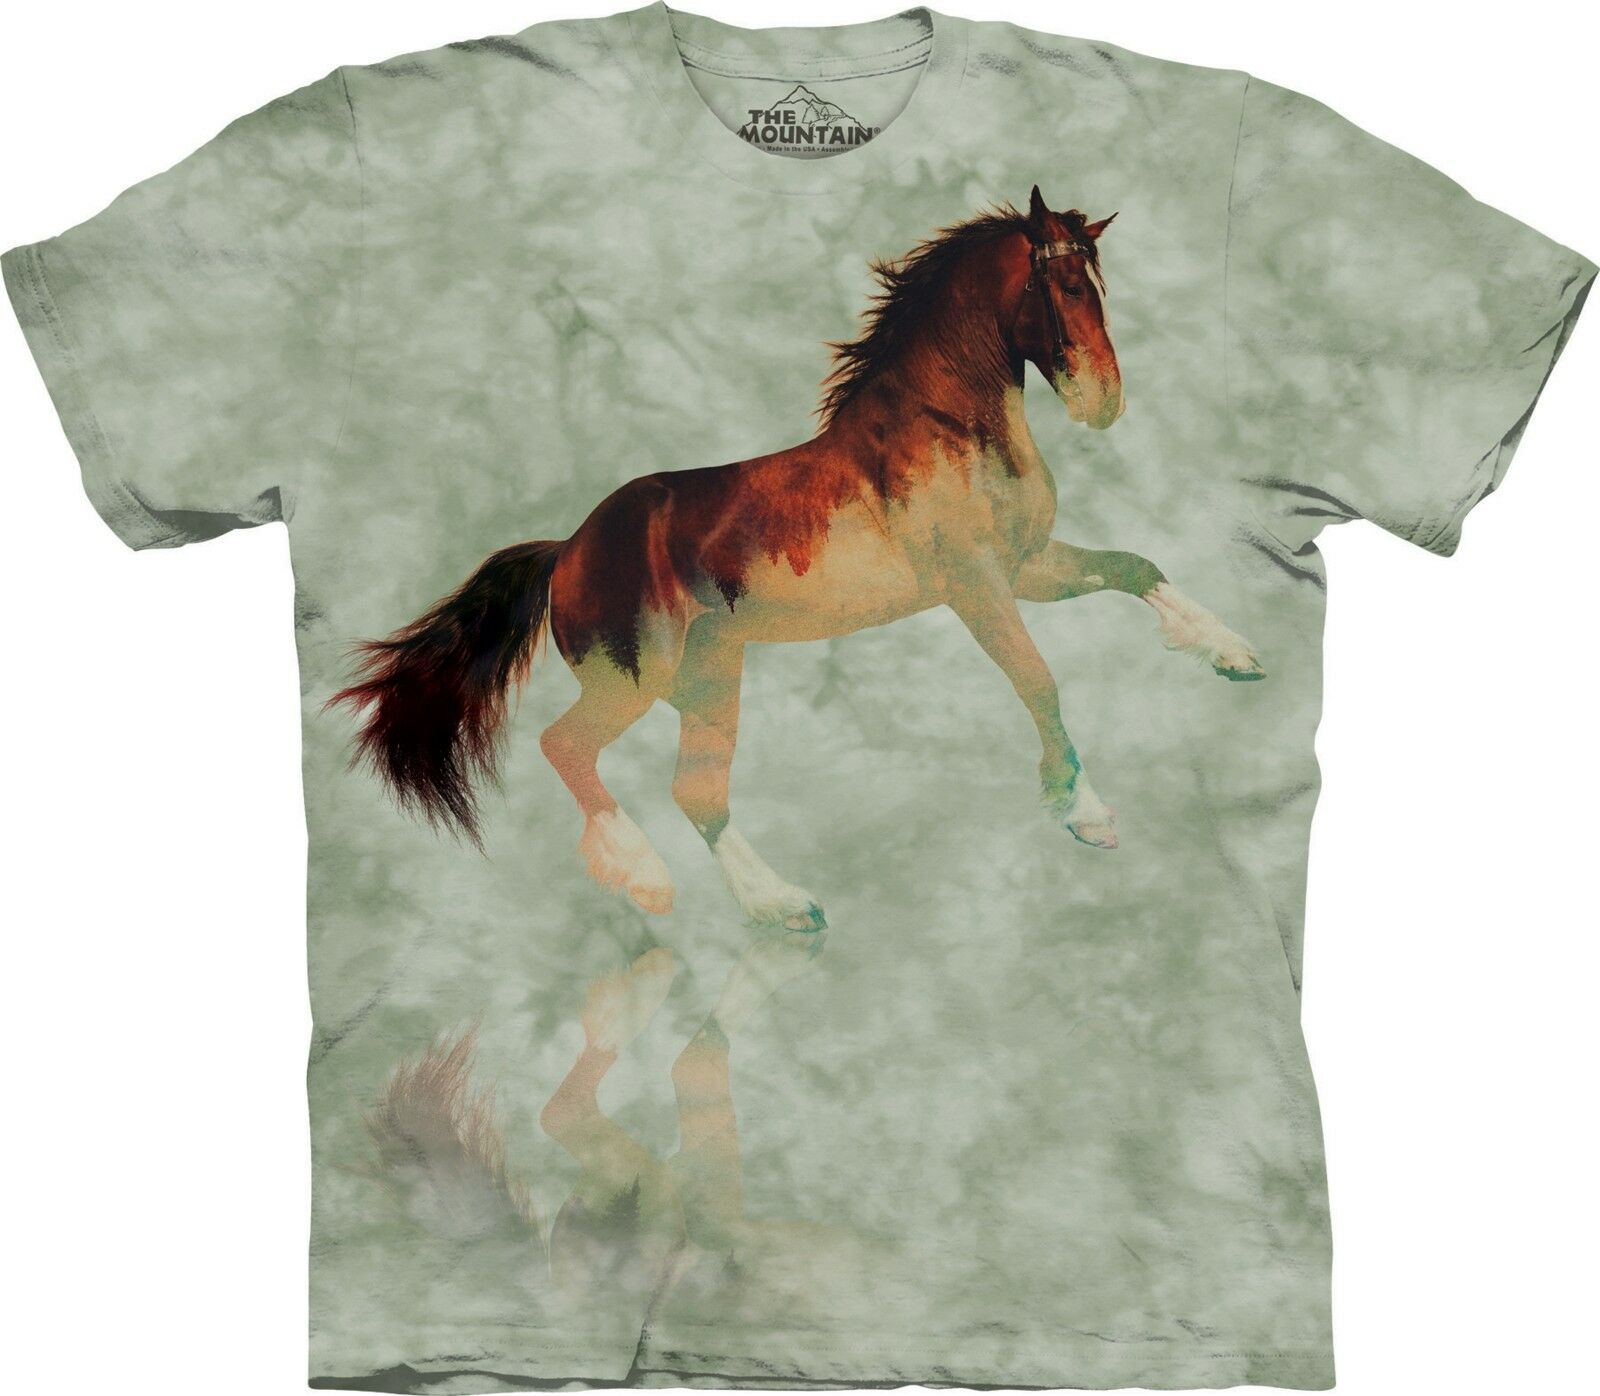 The Mountain Unisex Adult Forest Stallion Equine T Shirt